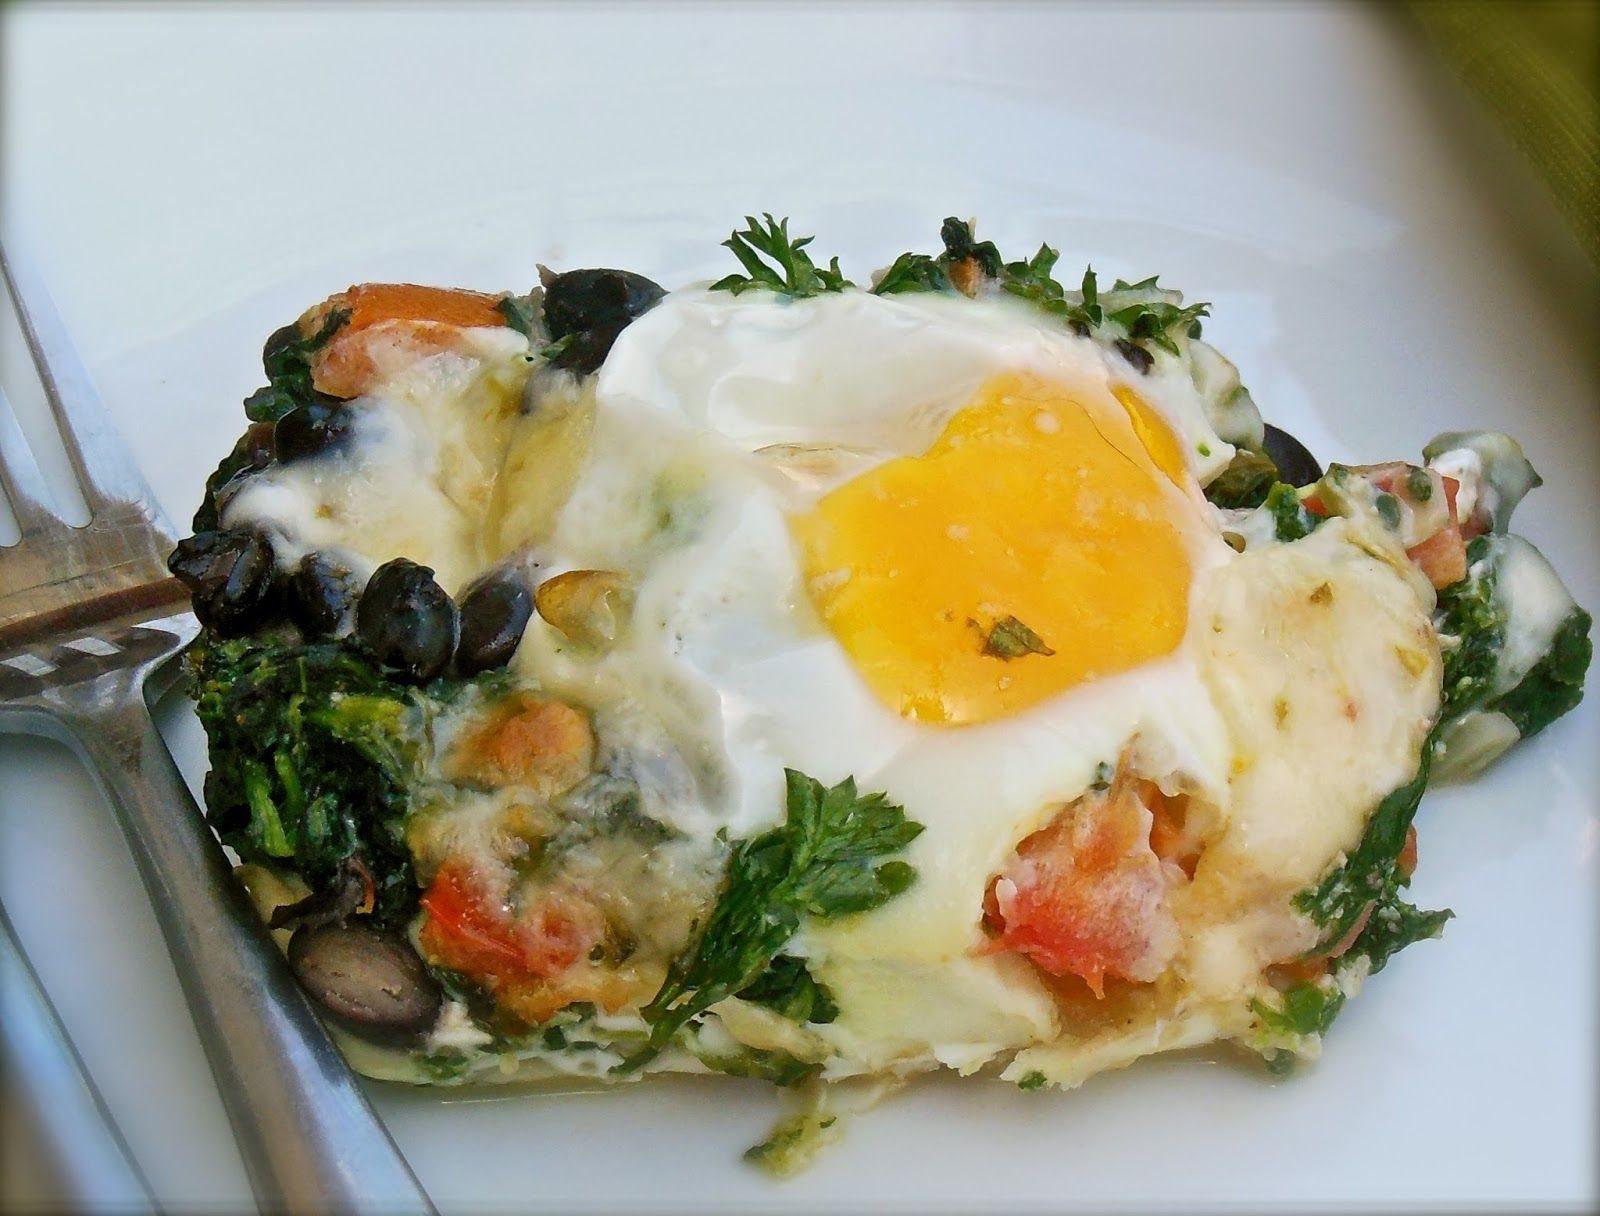 Spinach and Tomato Egg Bake: 10 Egg-stremely Good Egg Recipes For ...